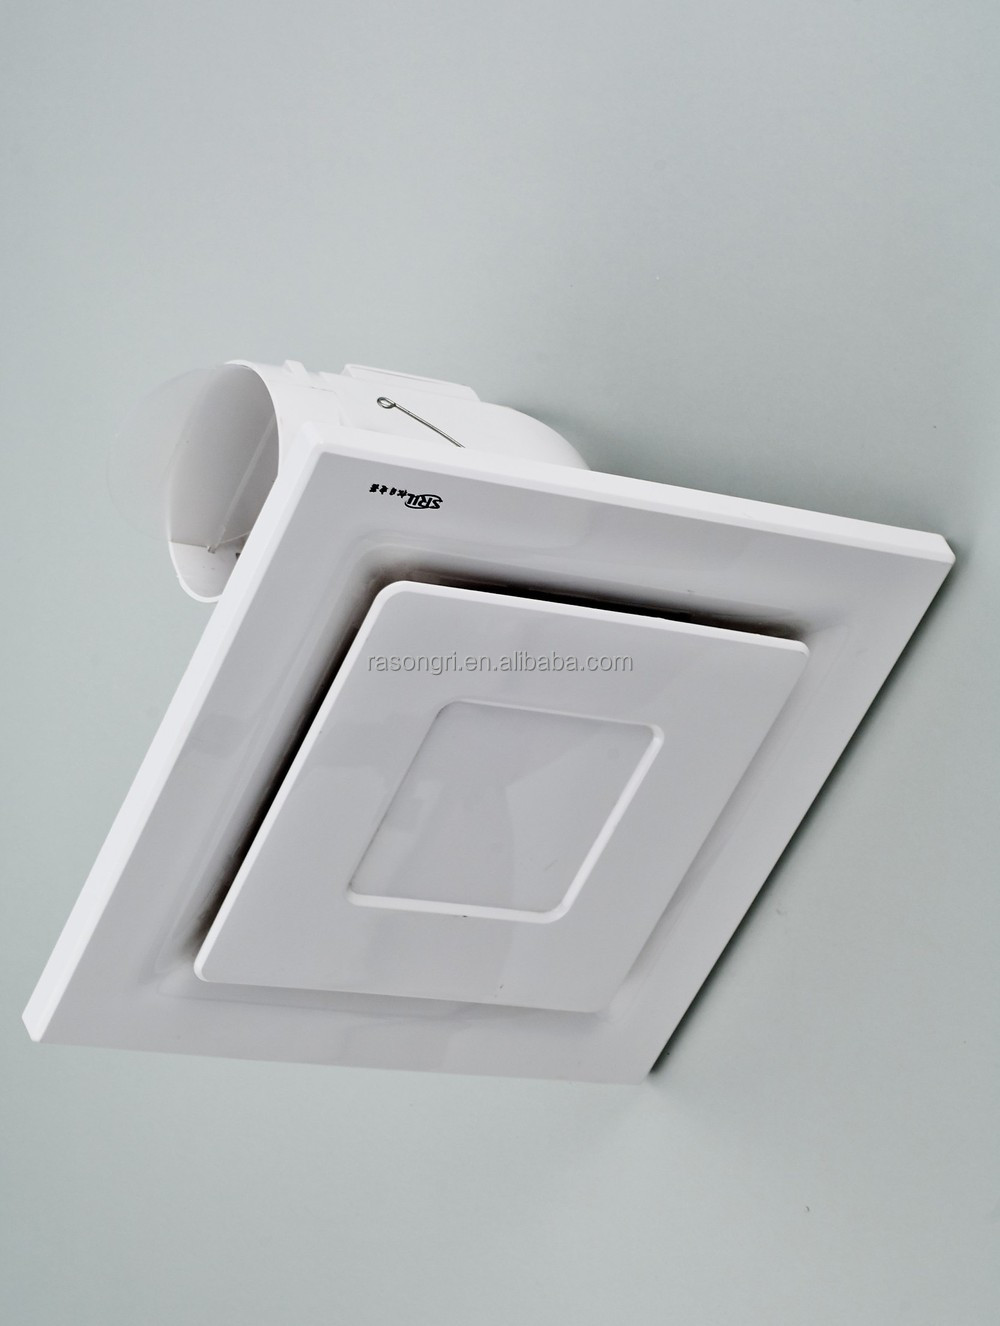 Bathroom Extractor Fan With Light: Bathroom Extractor Exhaust Fans (srl12m/srl24m)